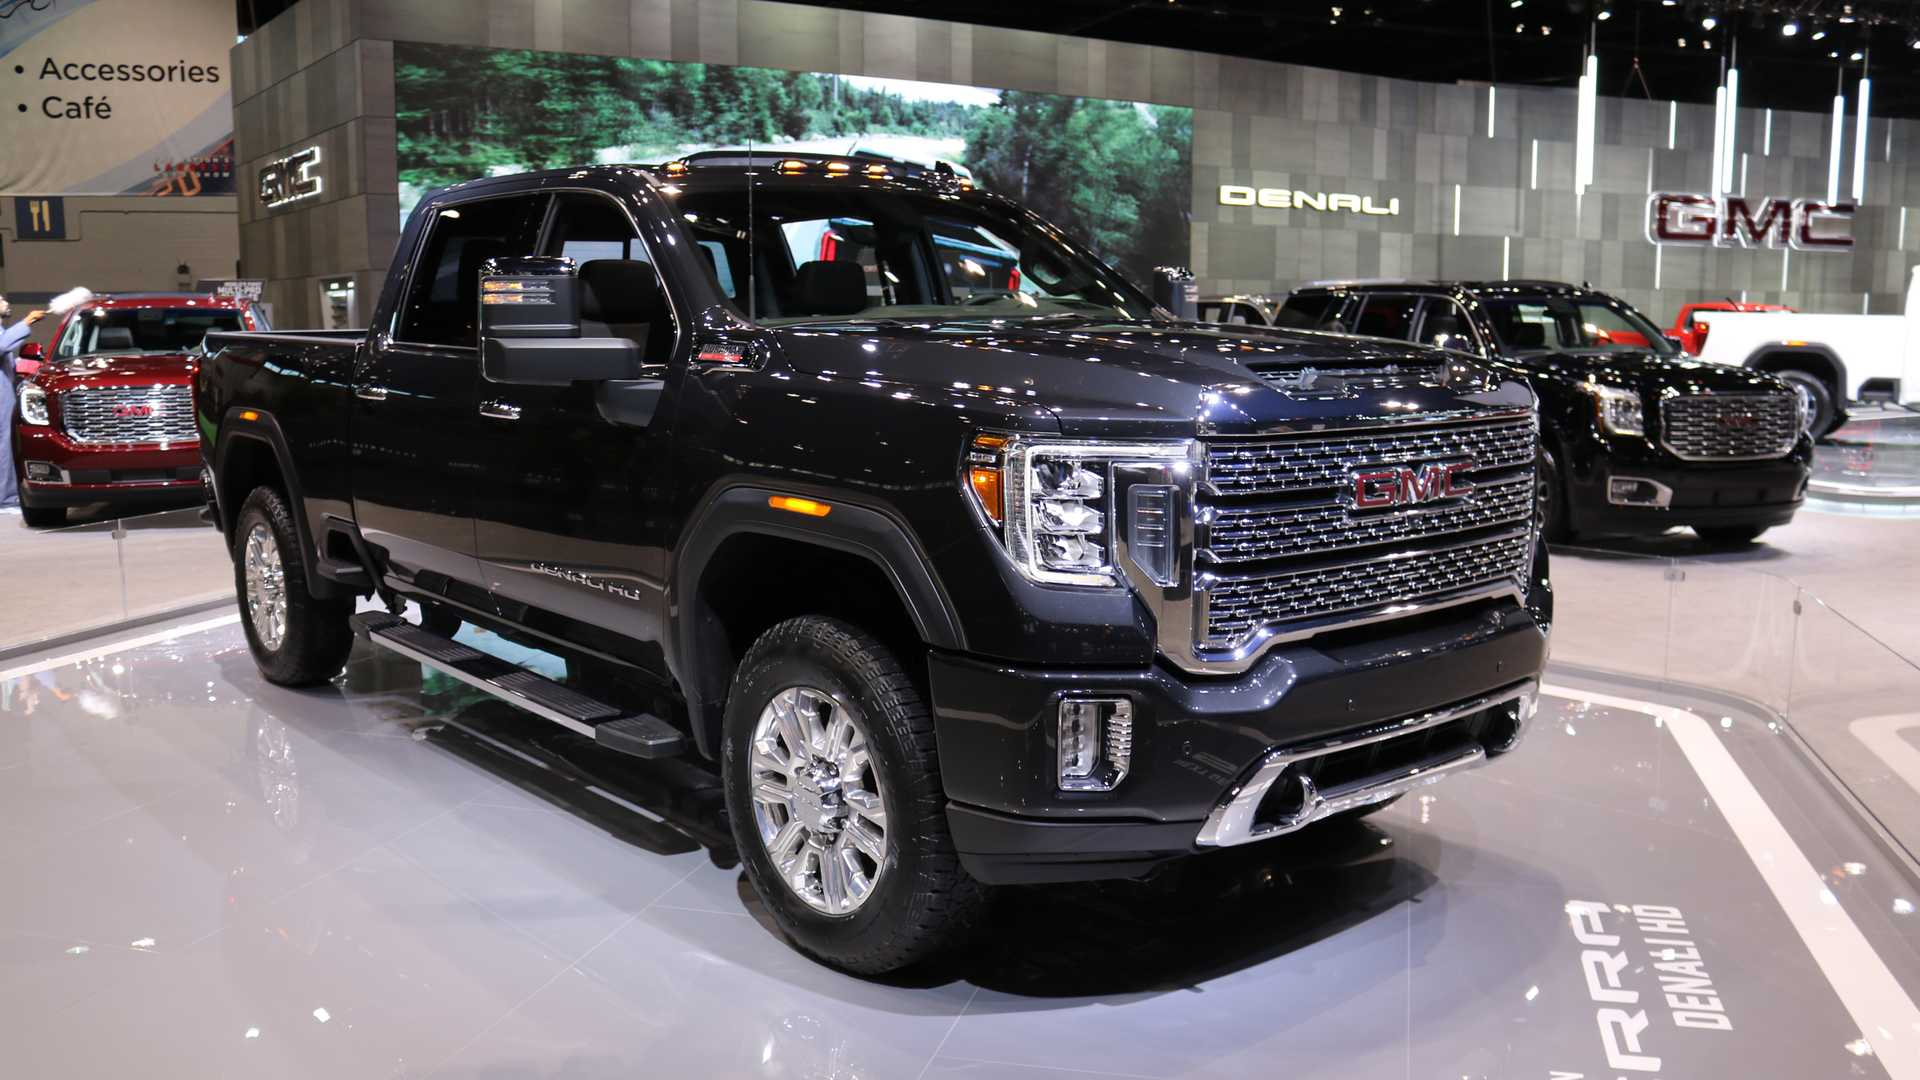 26 Best 2020 Gmc Sierra Interior Price And Release Date